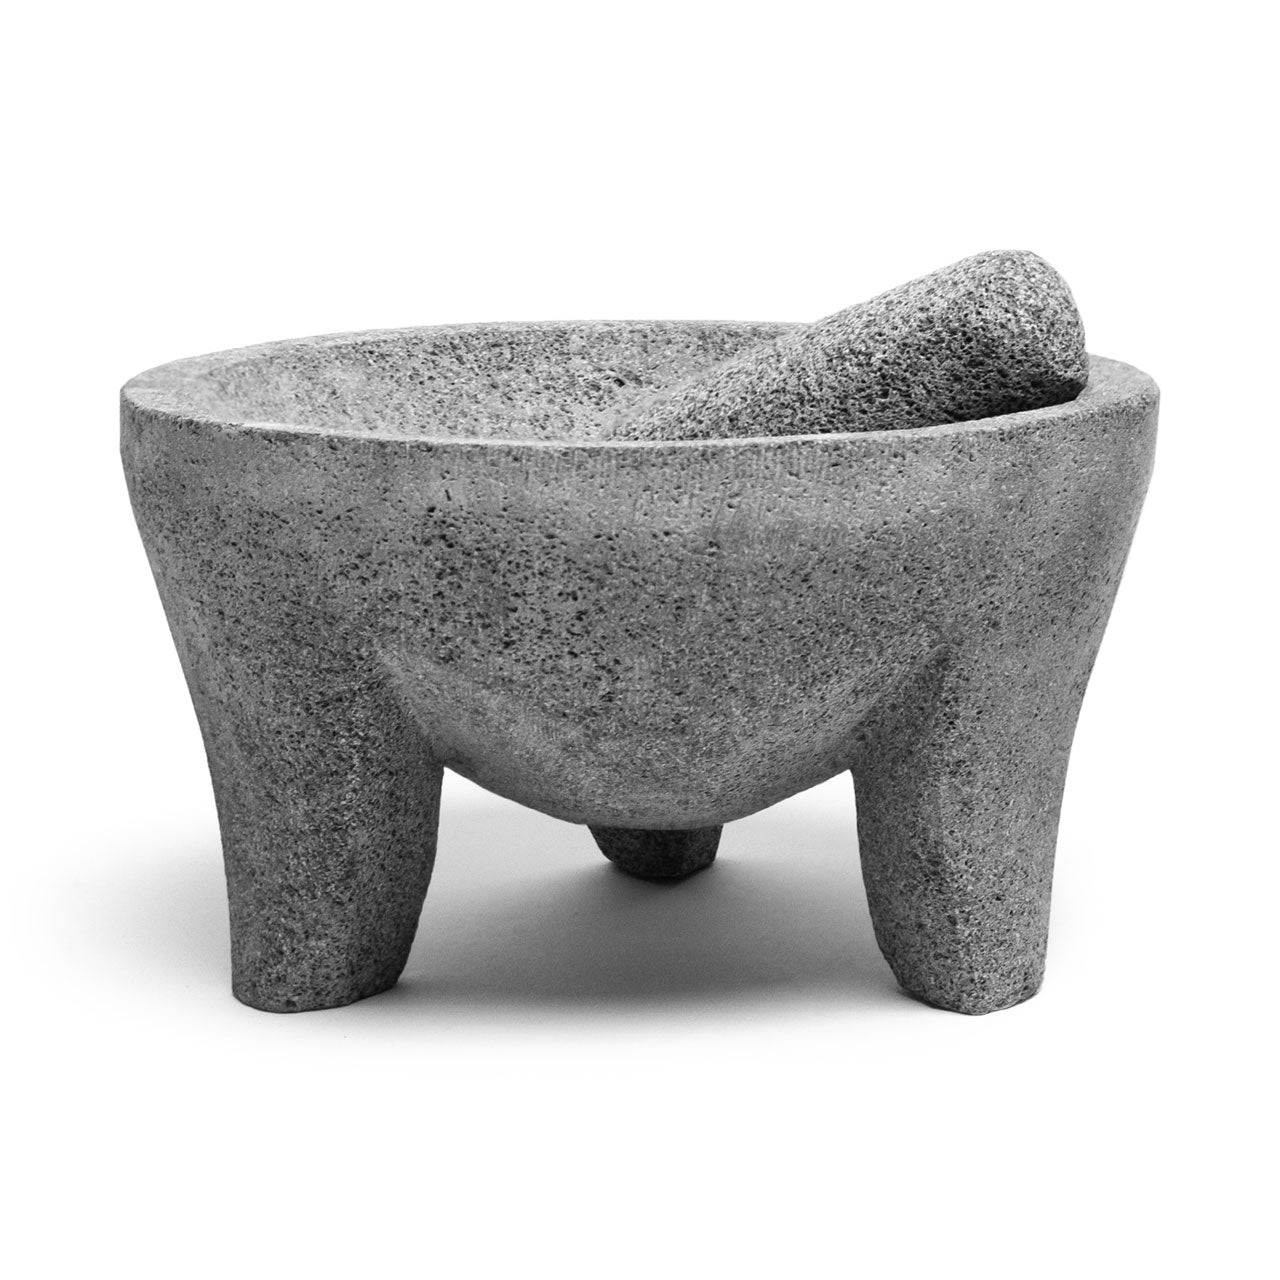 Verve Culture Molcajete & Tortilla Basket